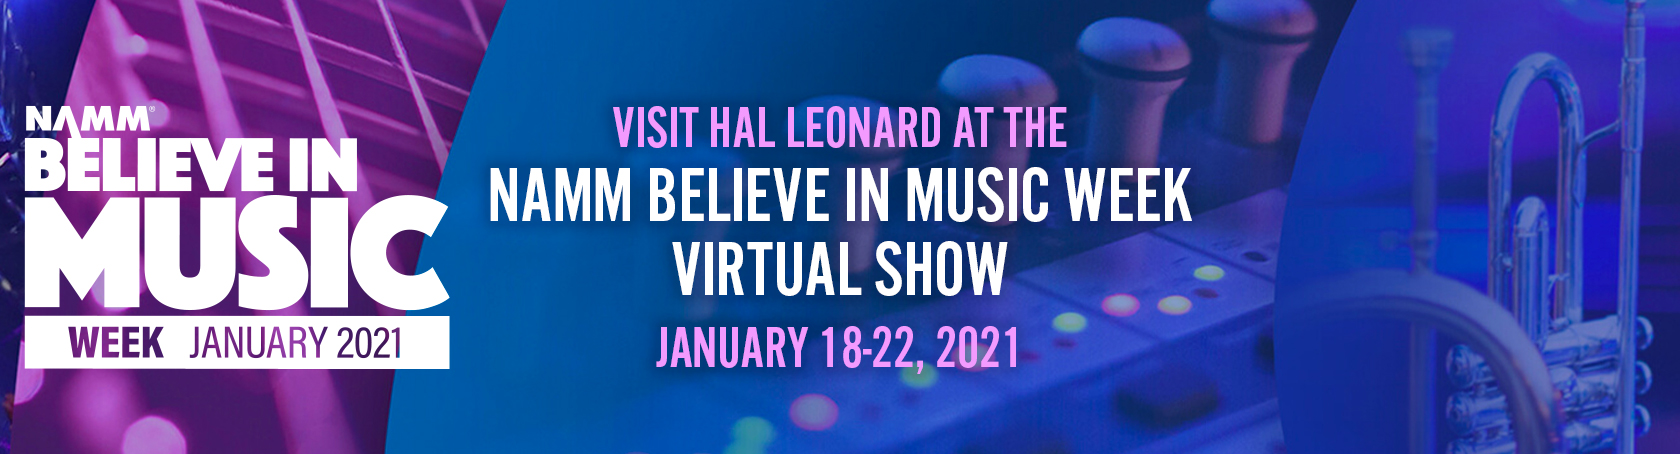 NAMM Believe in Music 2021